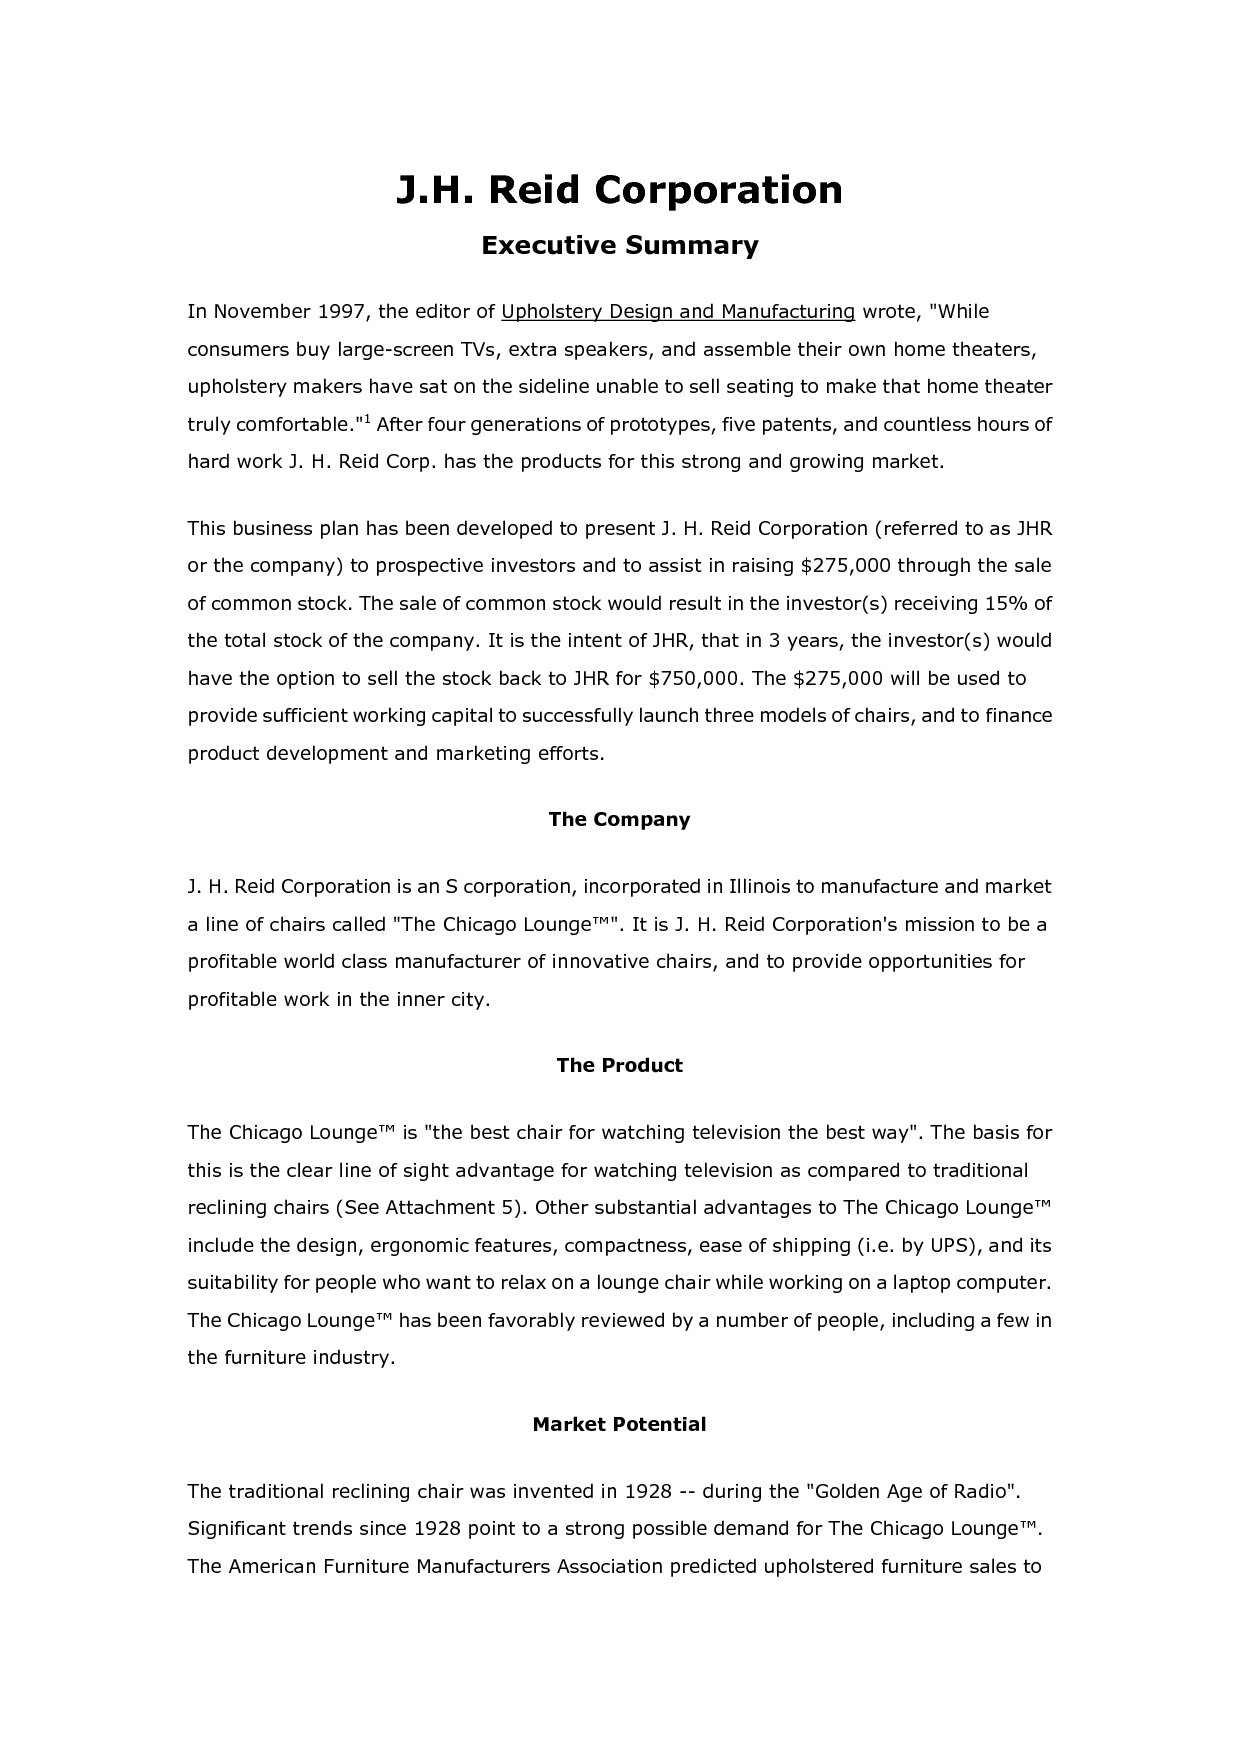 modest proposal essay ideas modest proposal essay examples ...